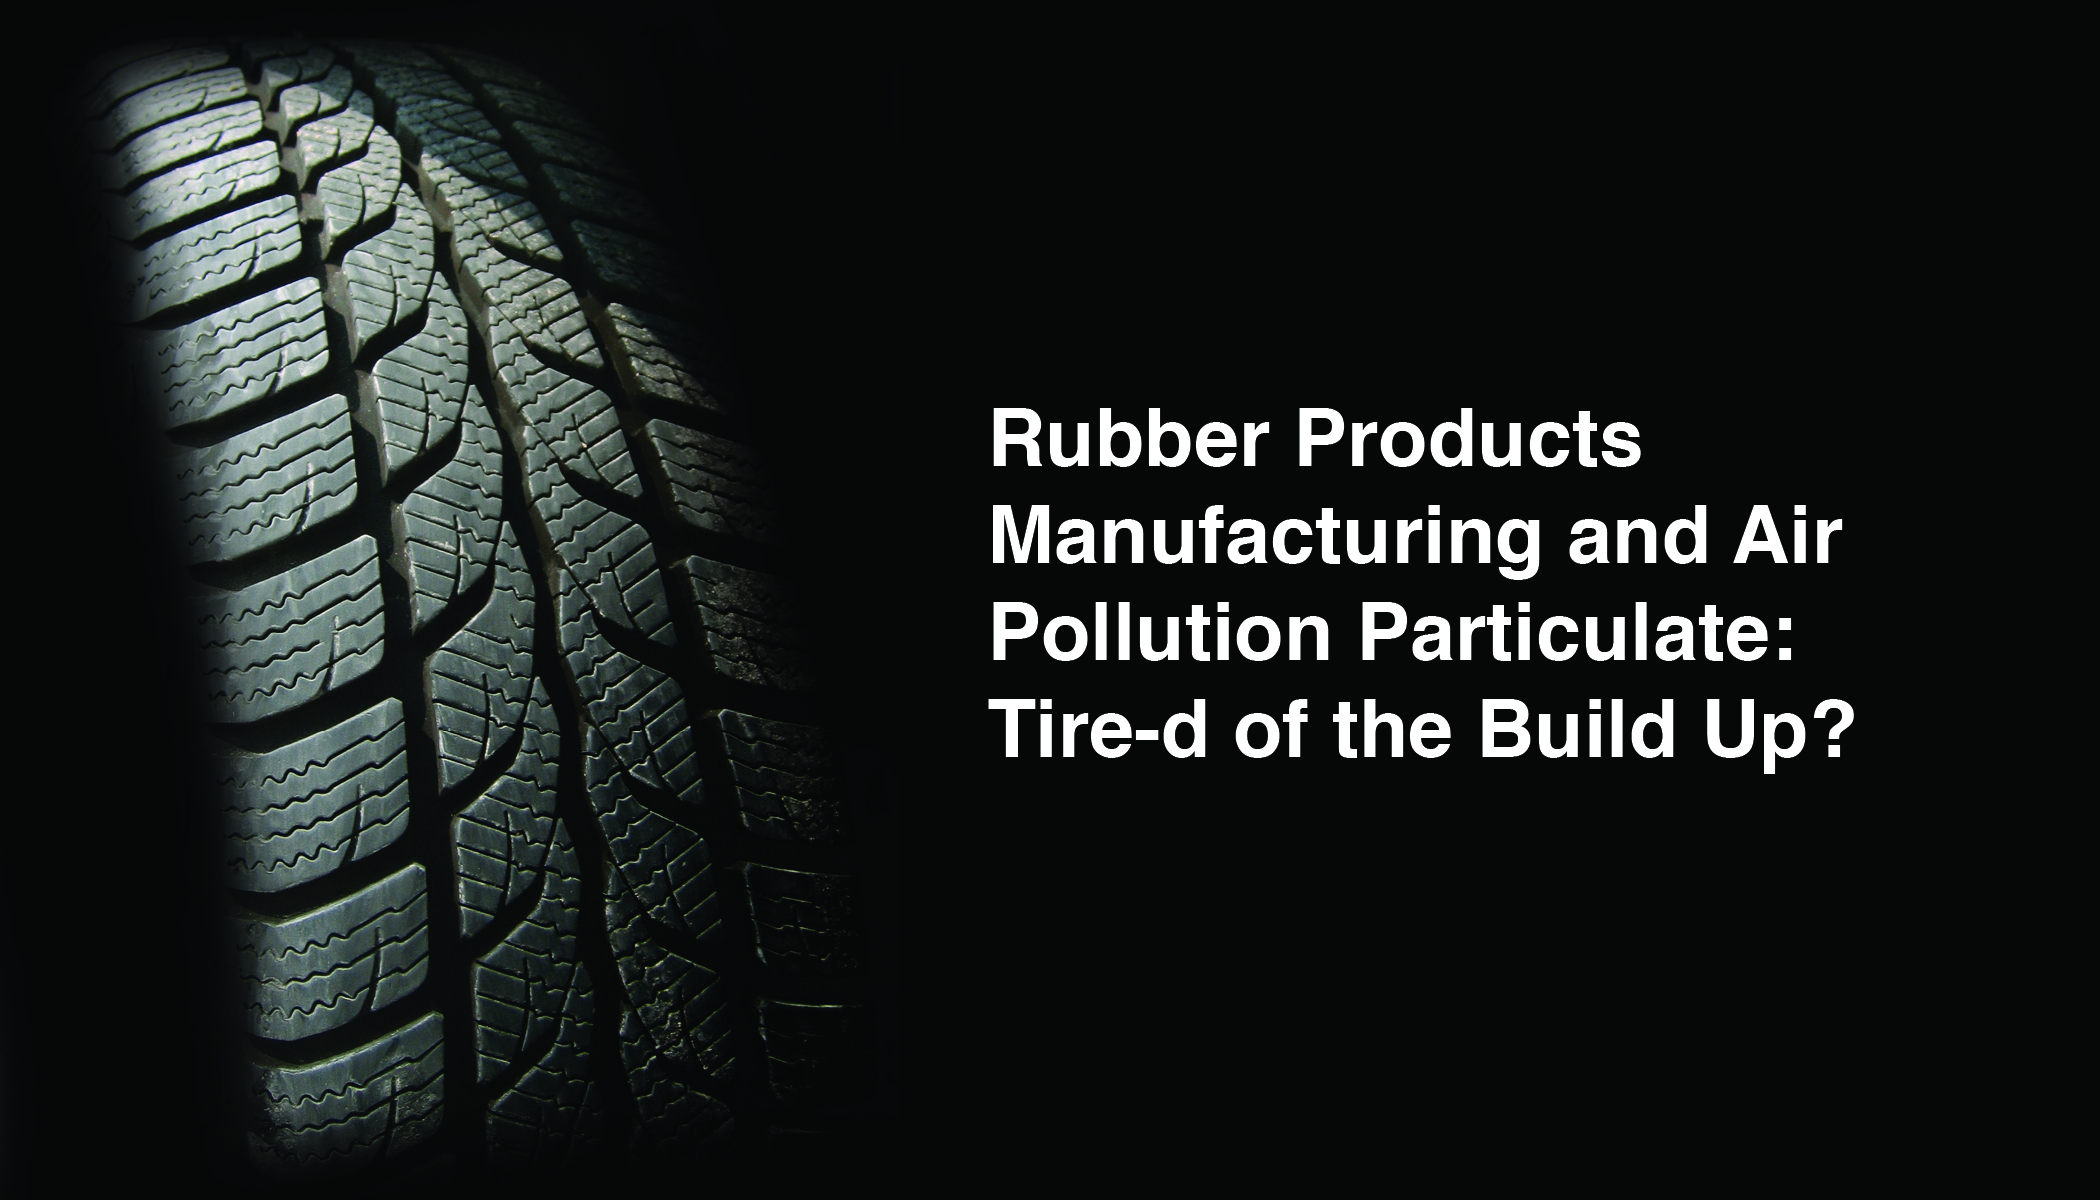 Rubber Products Mfg & Air Pollution Particulate: Tire-d of the Build Up?